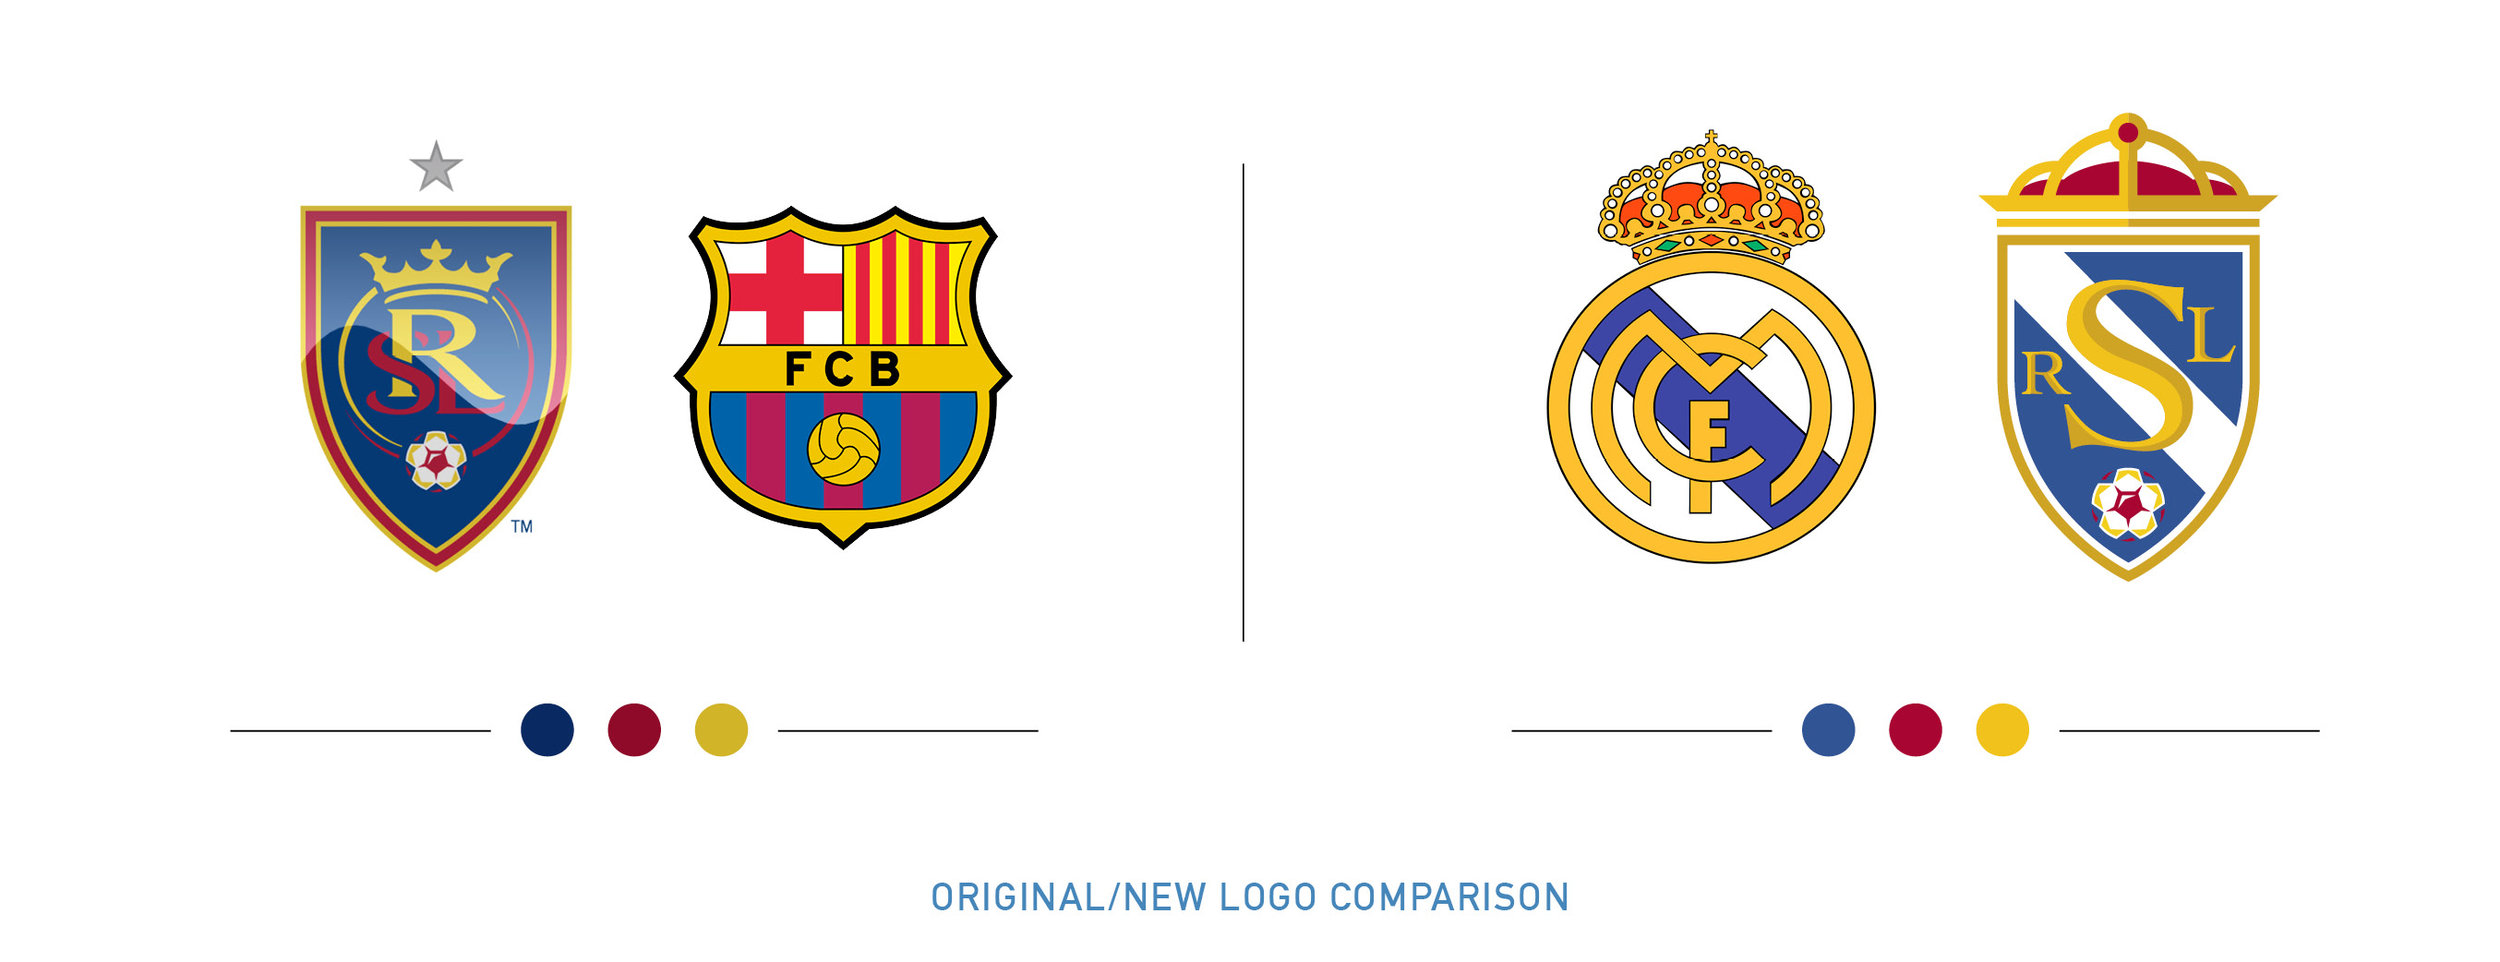 When Real Salt Lake's logo was created, it was done so with the colors of Real Madrid's biggest rival, FC Barcelona.